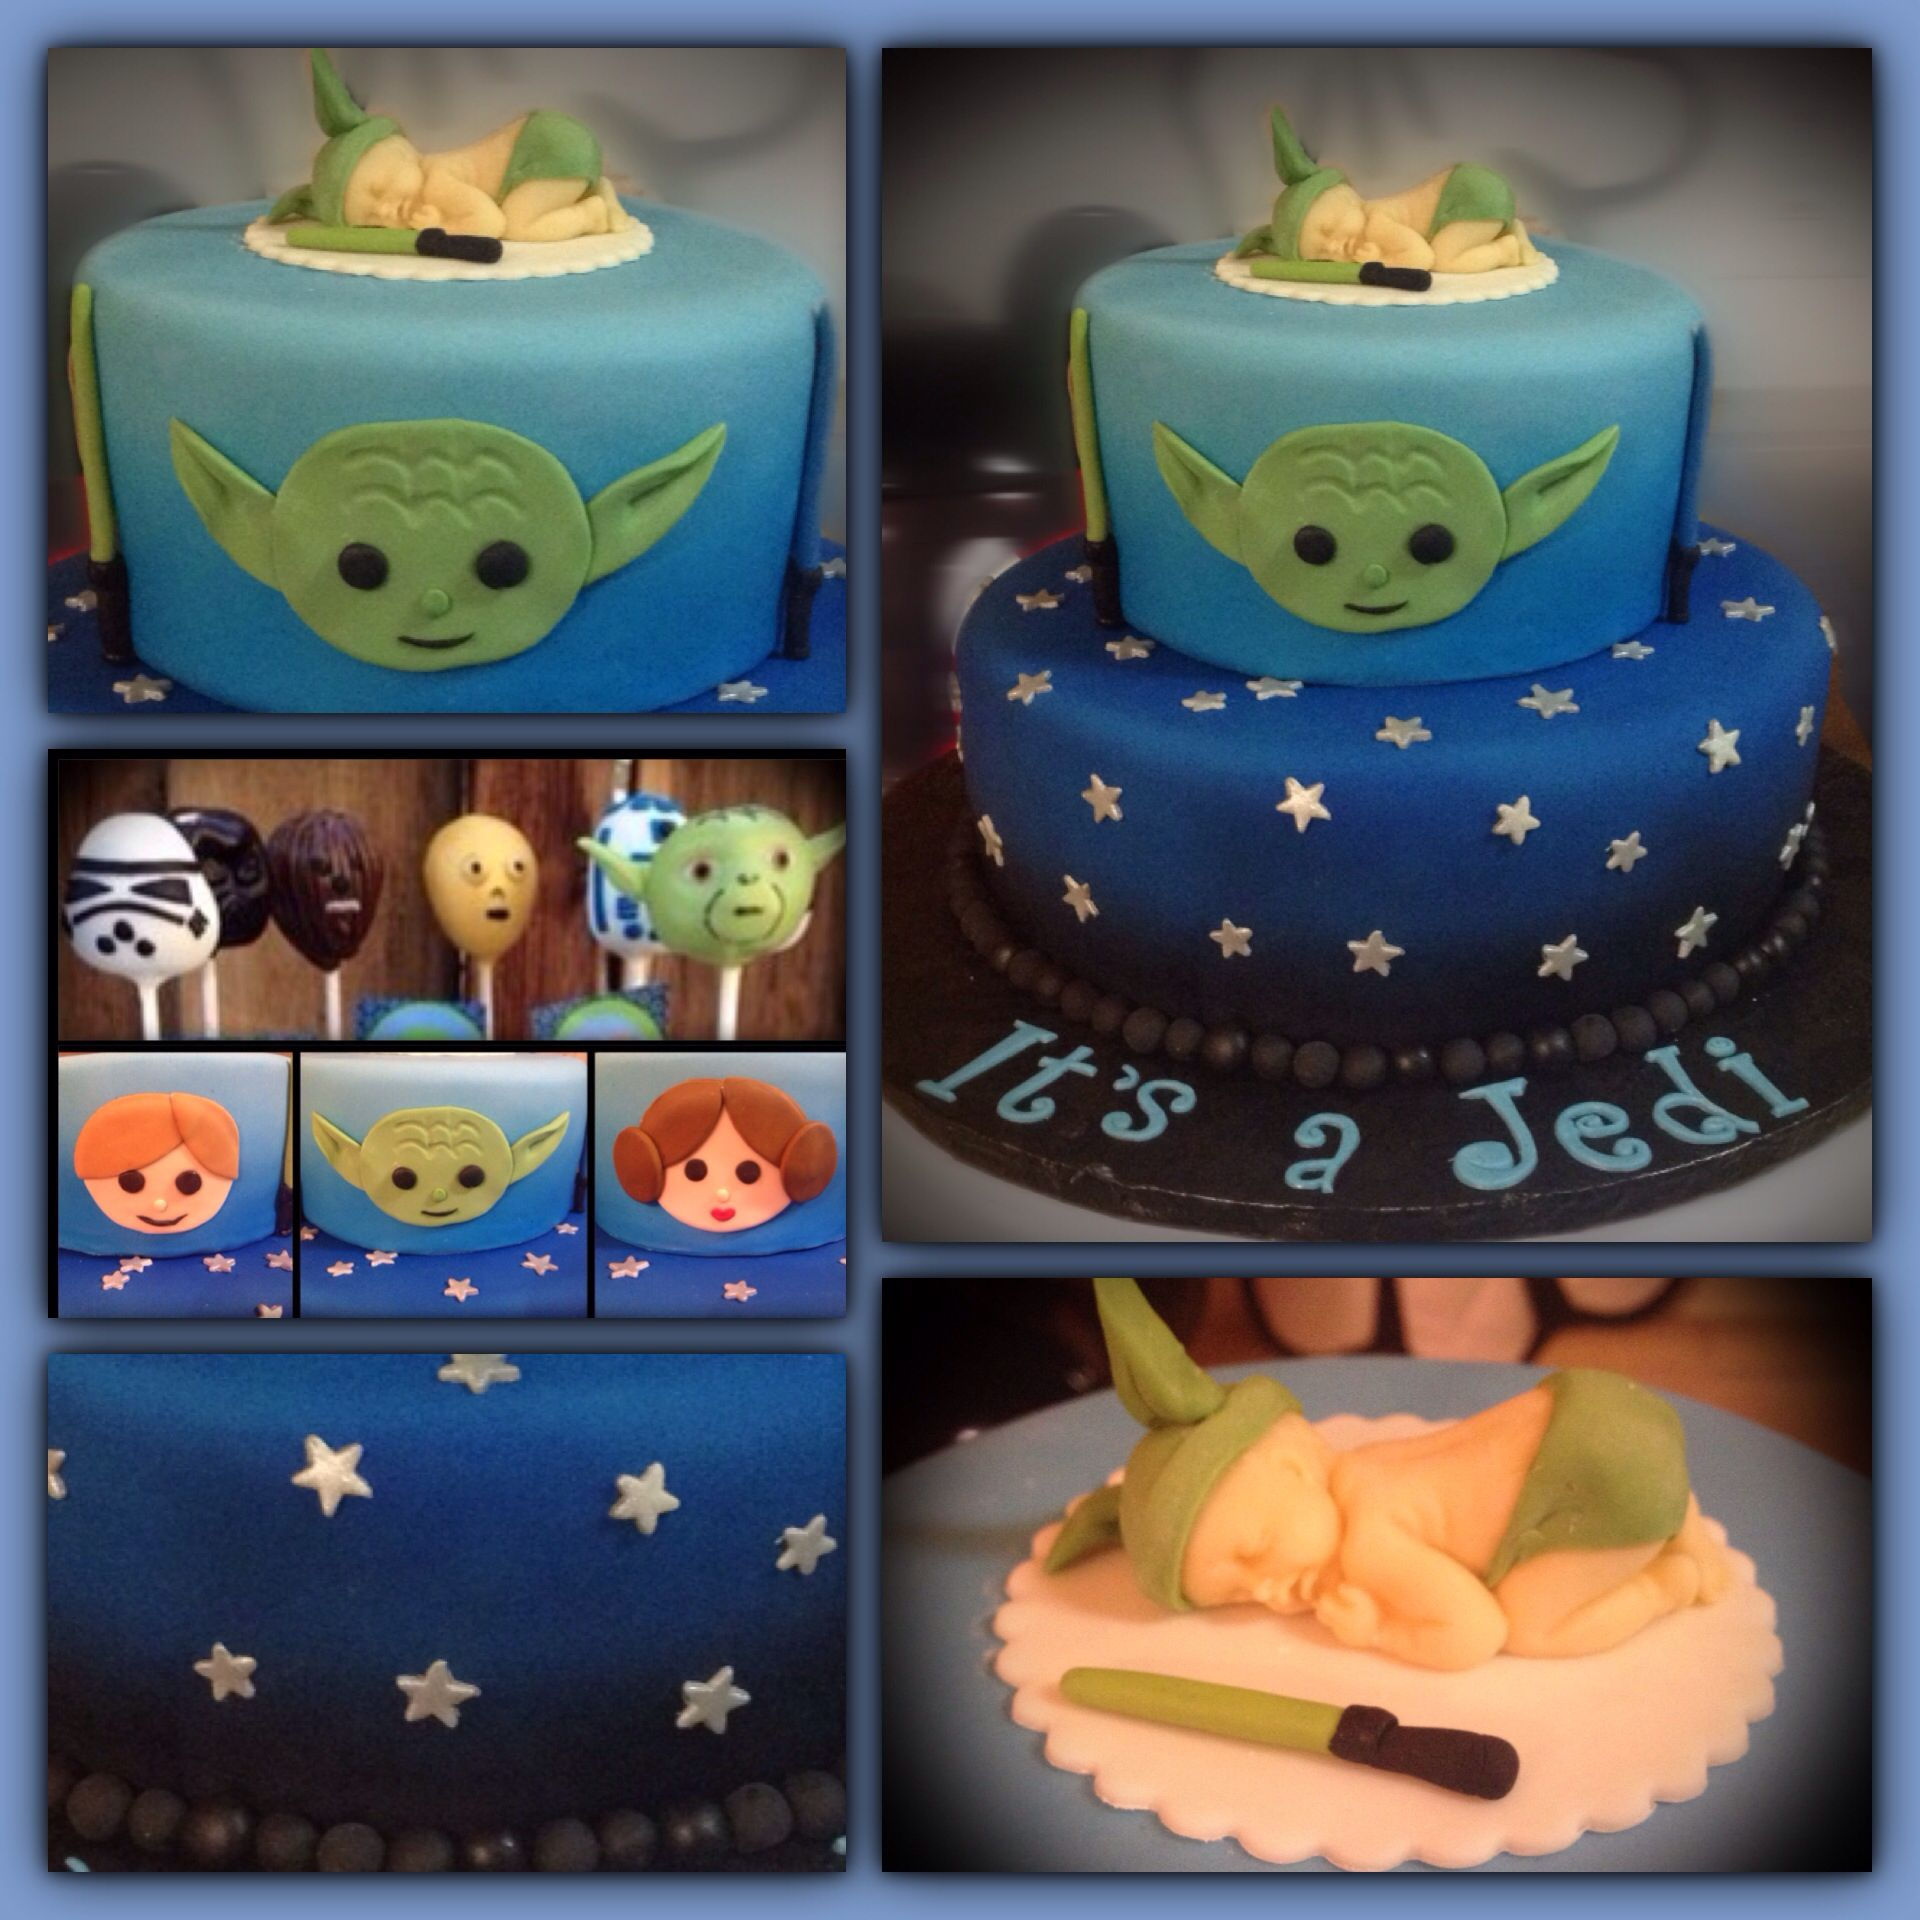 star wars baby shower cake it 39 s a jedi cake creations pin